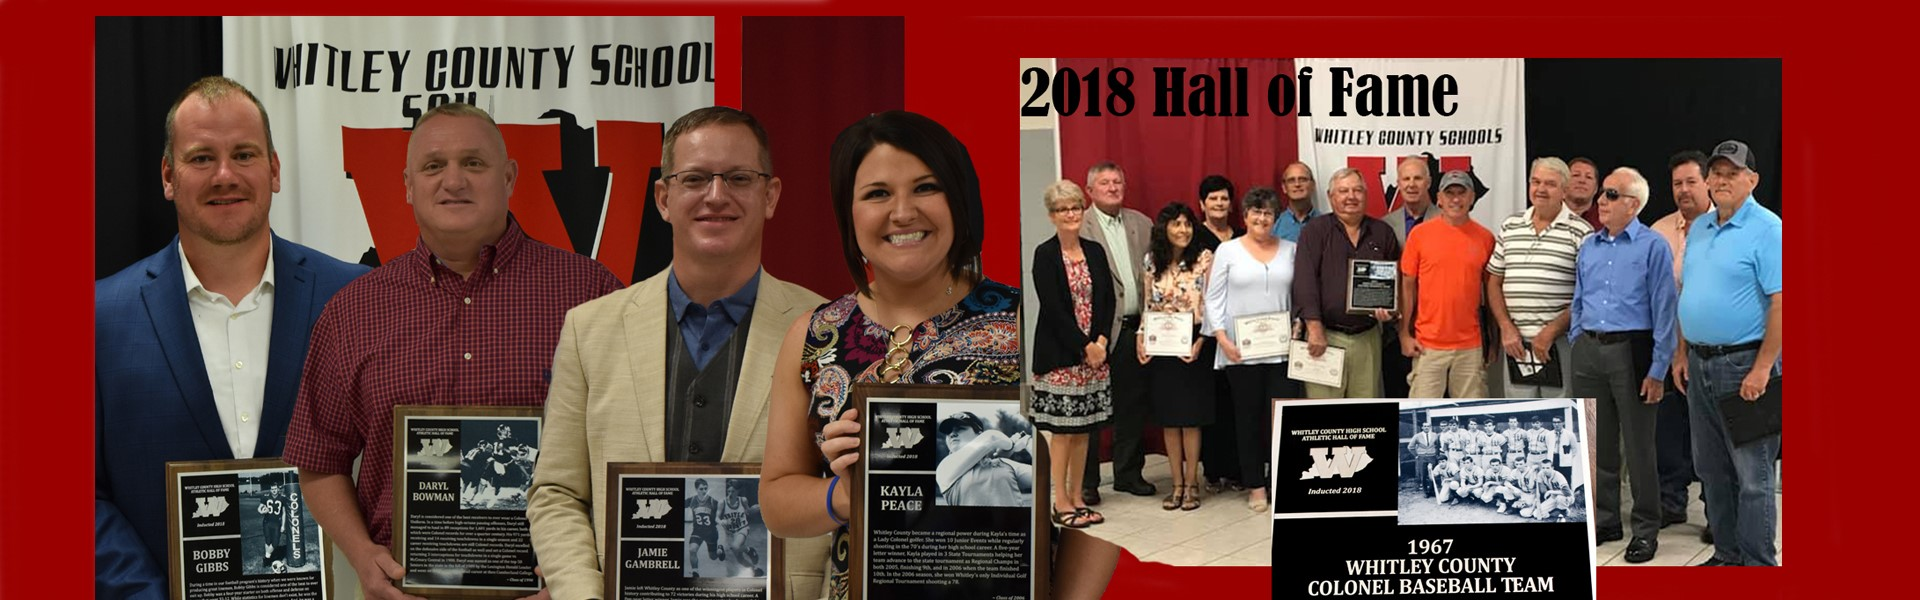 WCHS Class of 2018 Hall of Fame